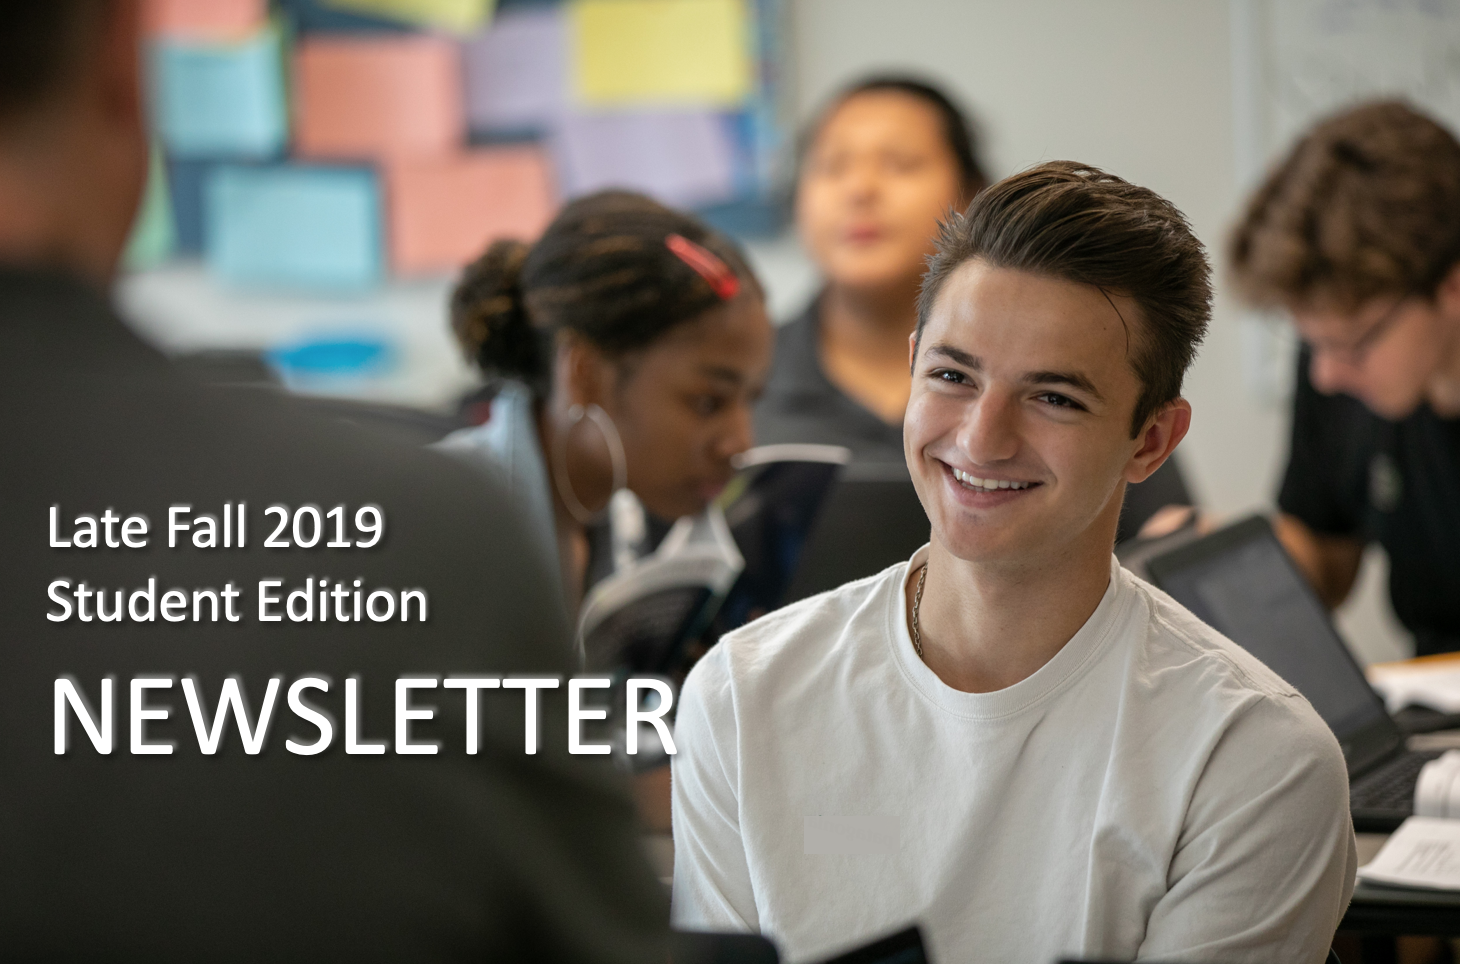 Late Fall 2019 Newsletter